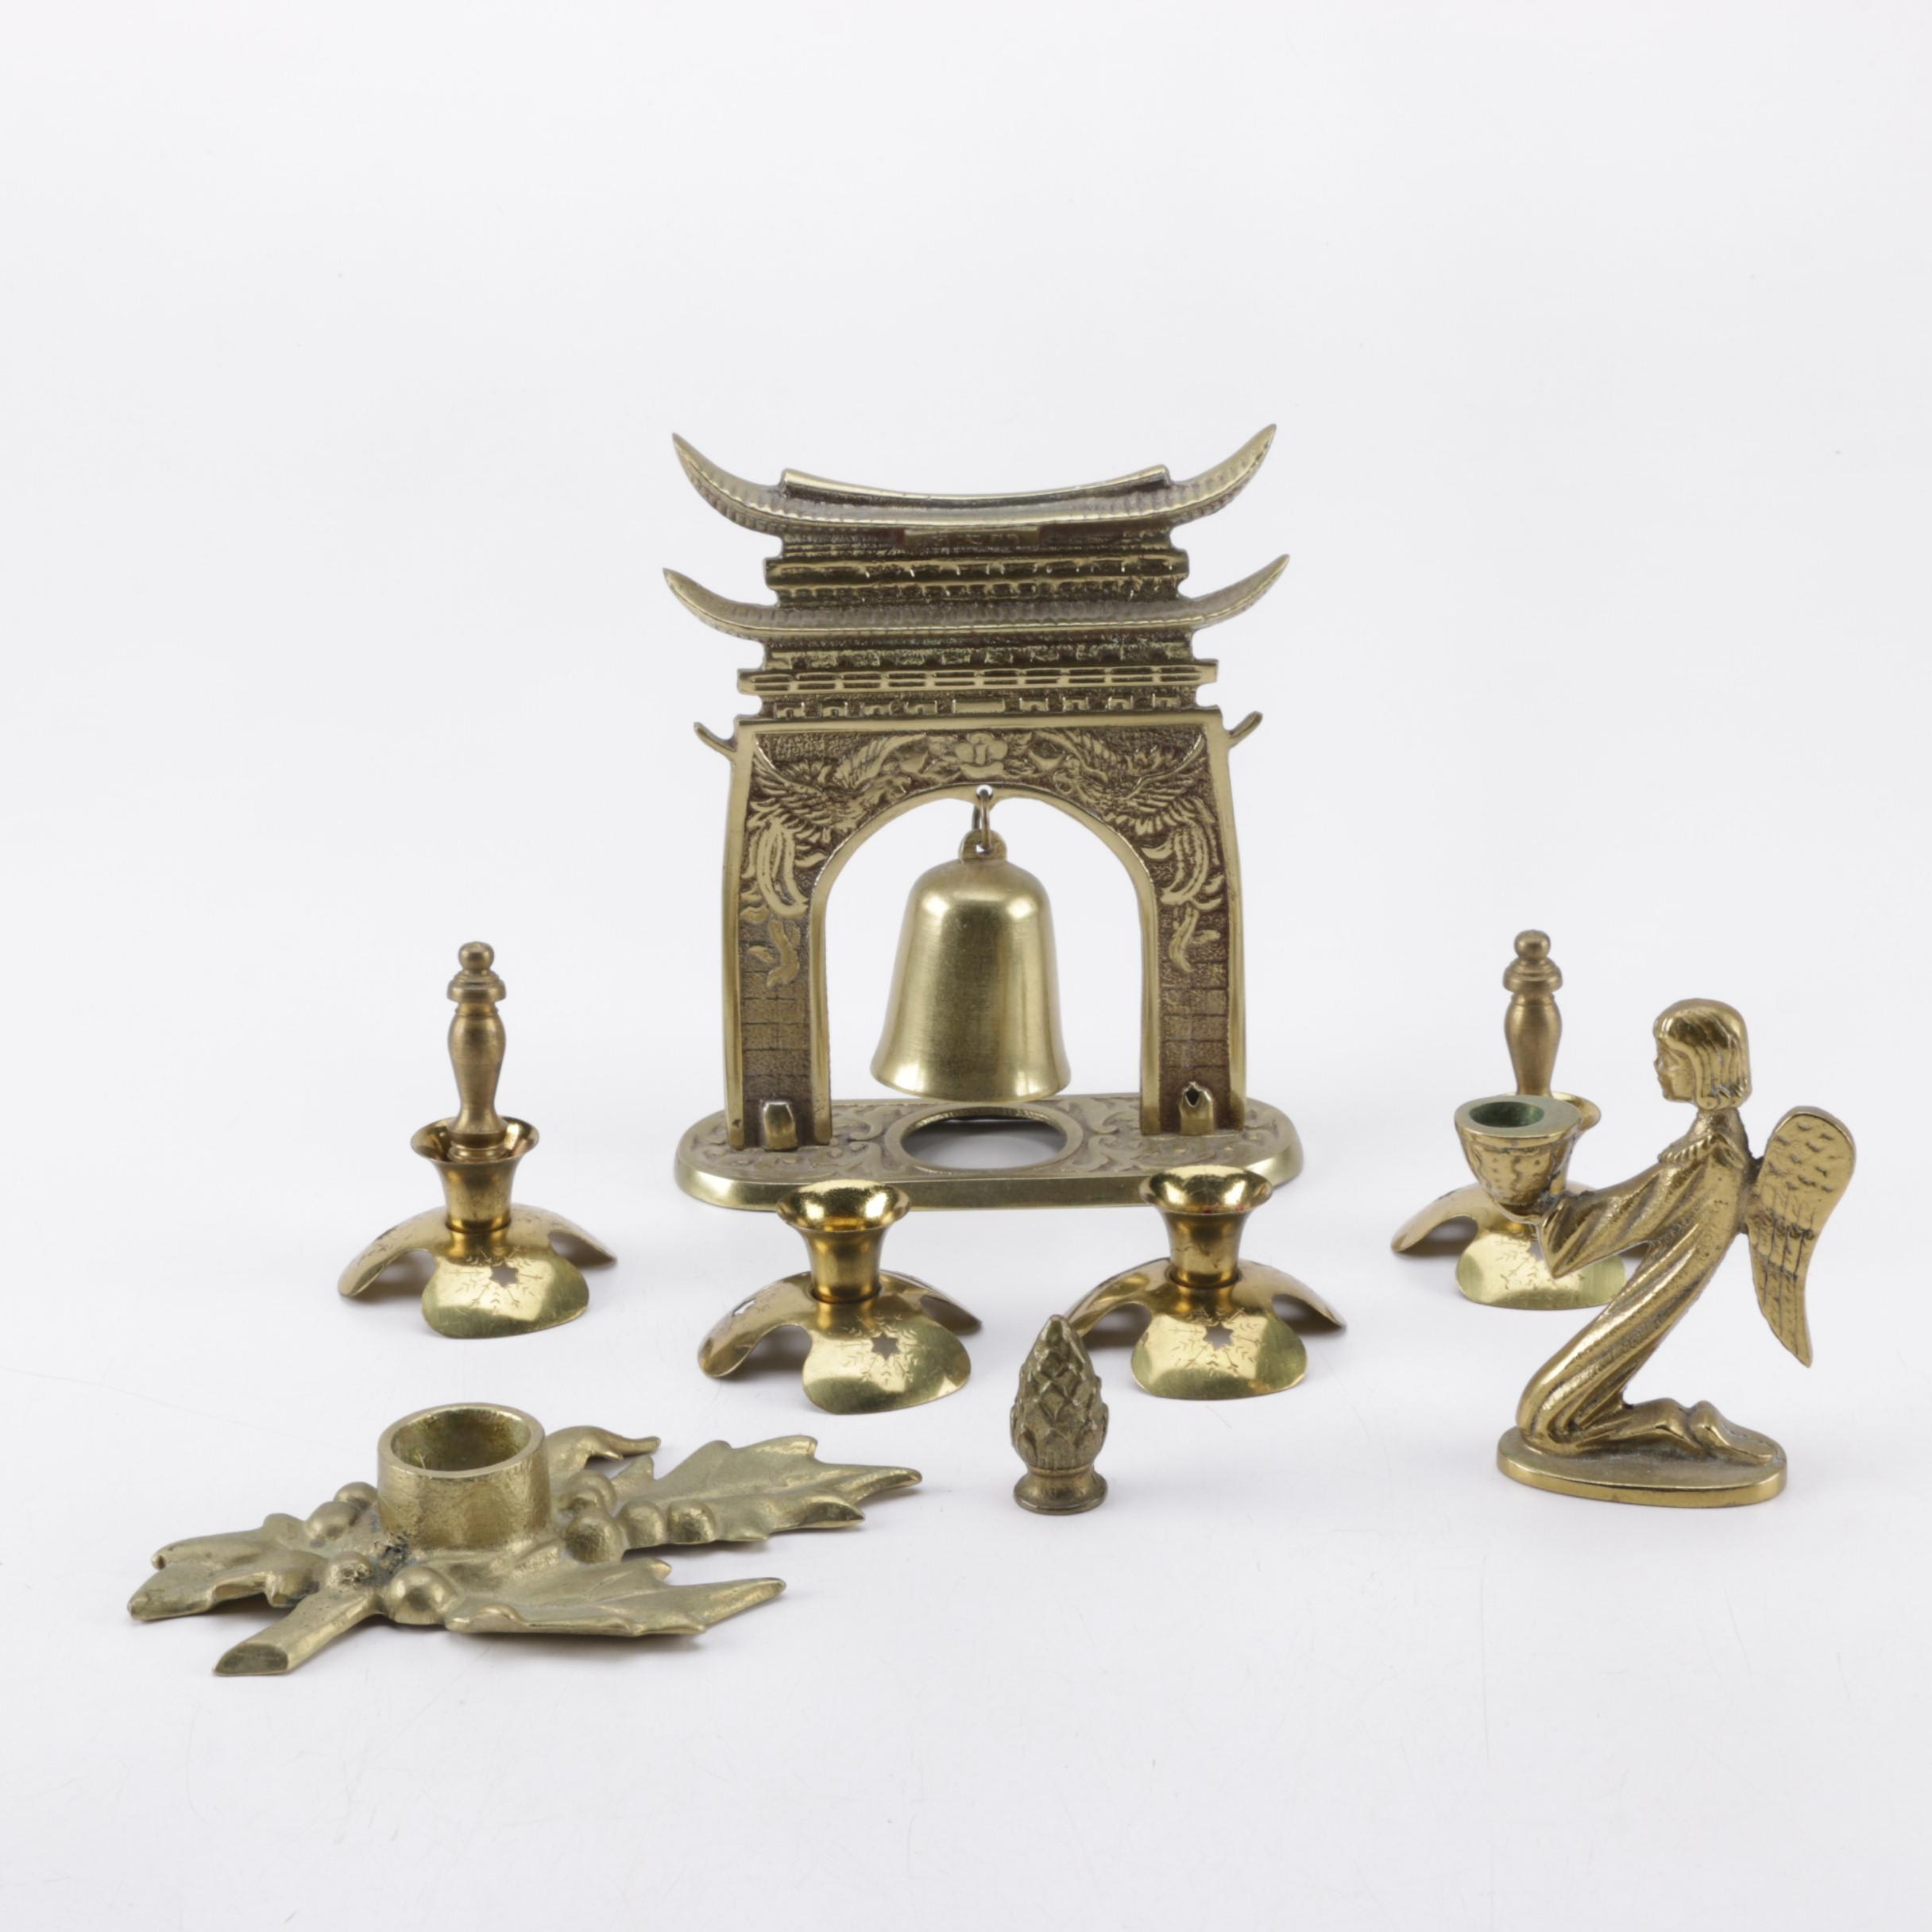 Assortment of Brass Candle Holders and Decor